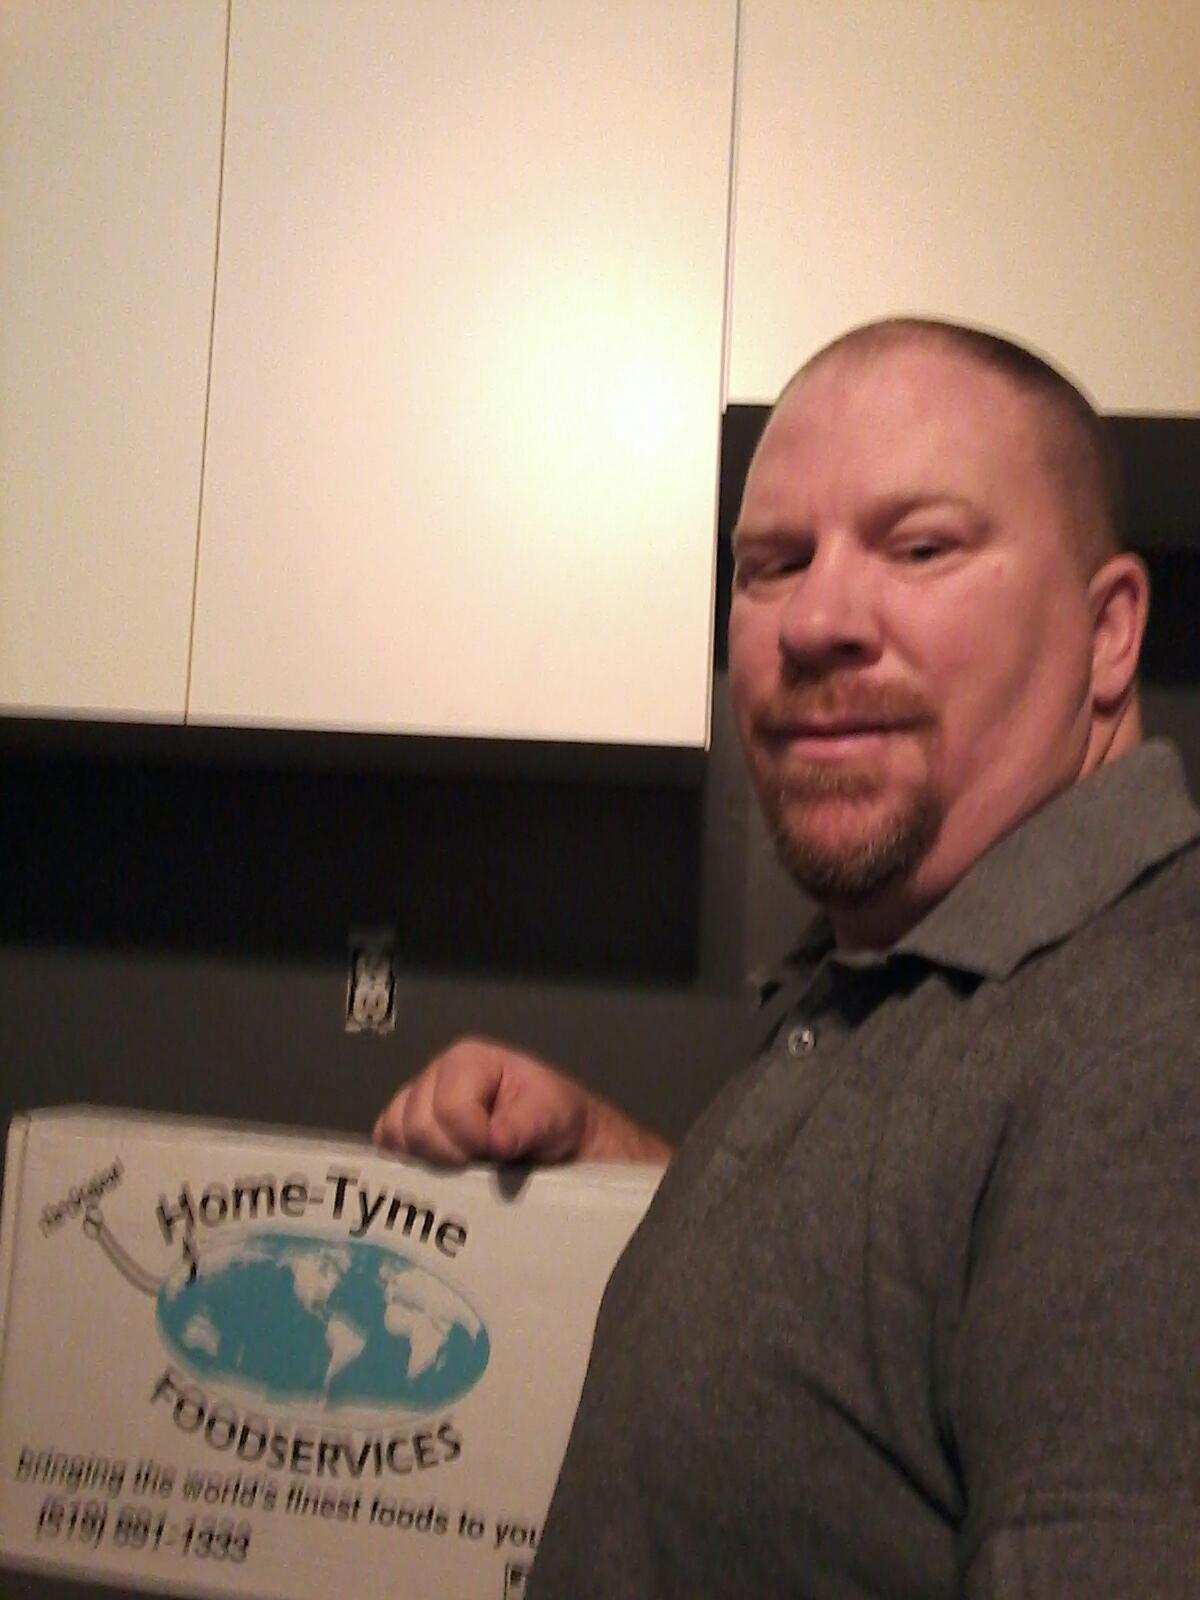 Home-Tyme Foodservice Delivery Driver | Todd Thibert